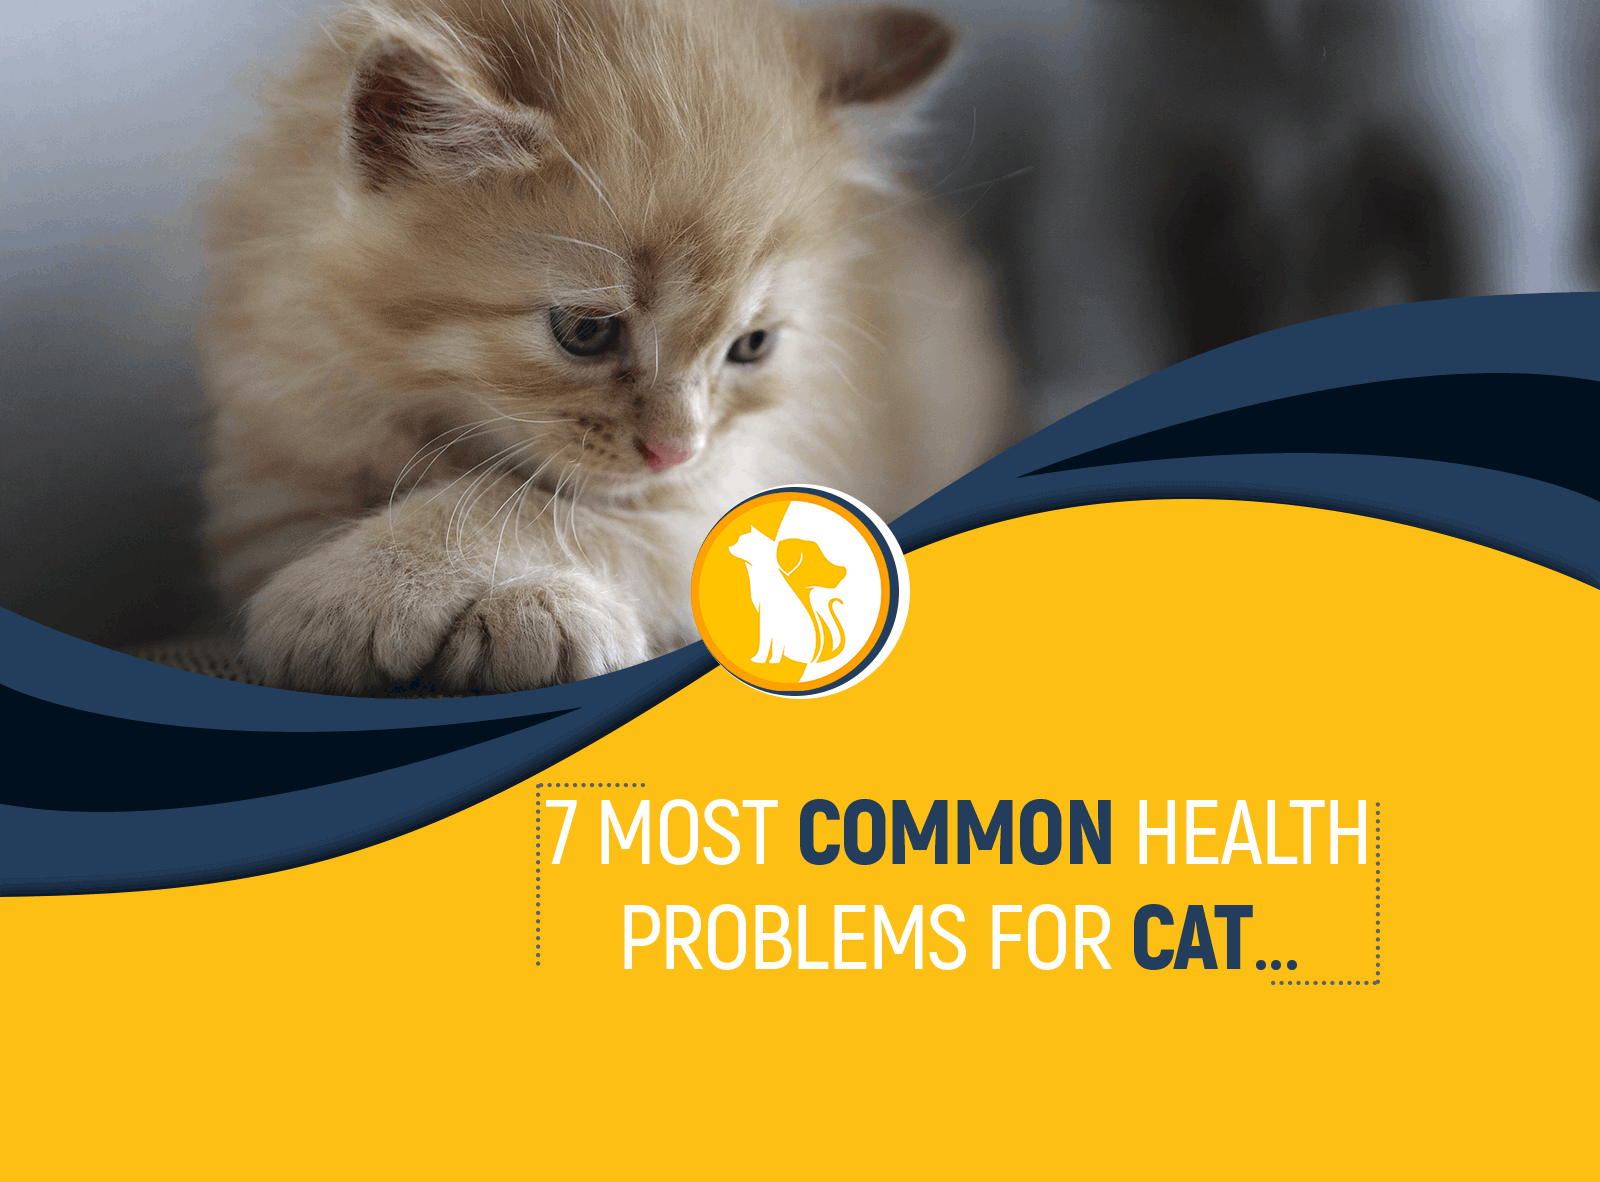 7 Most Common Health Problems for Cat